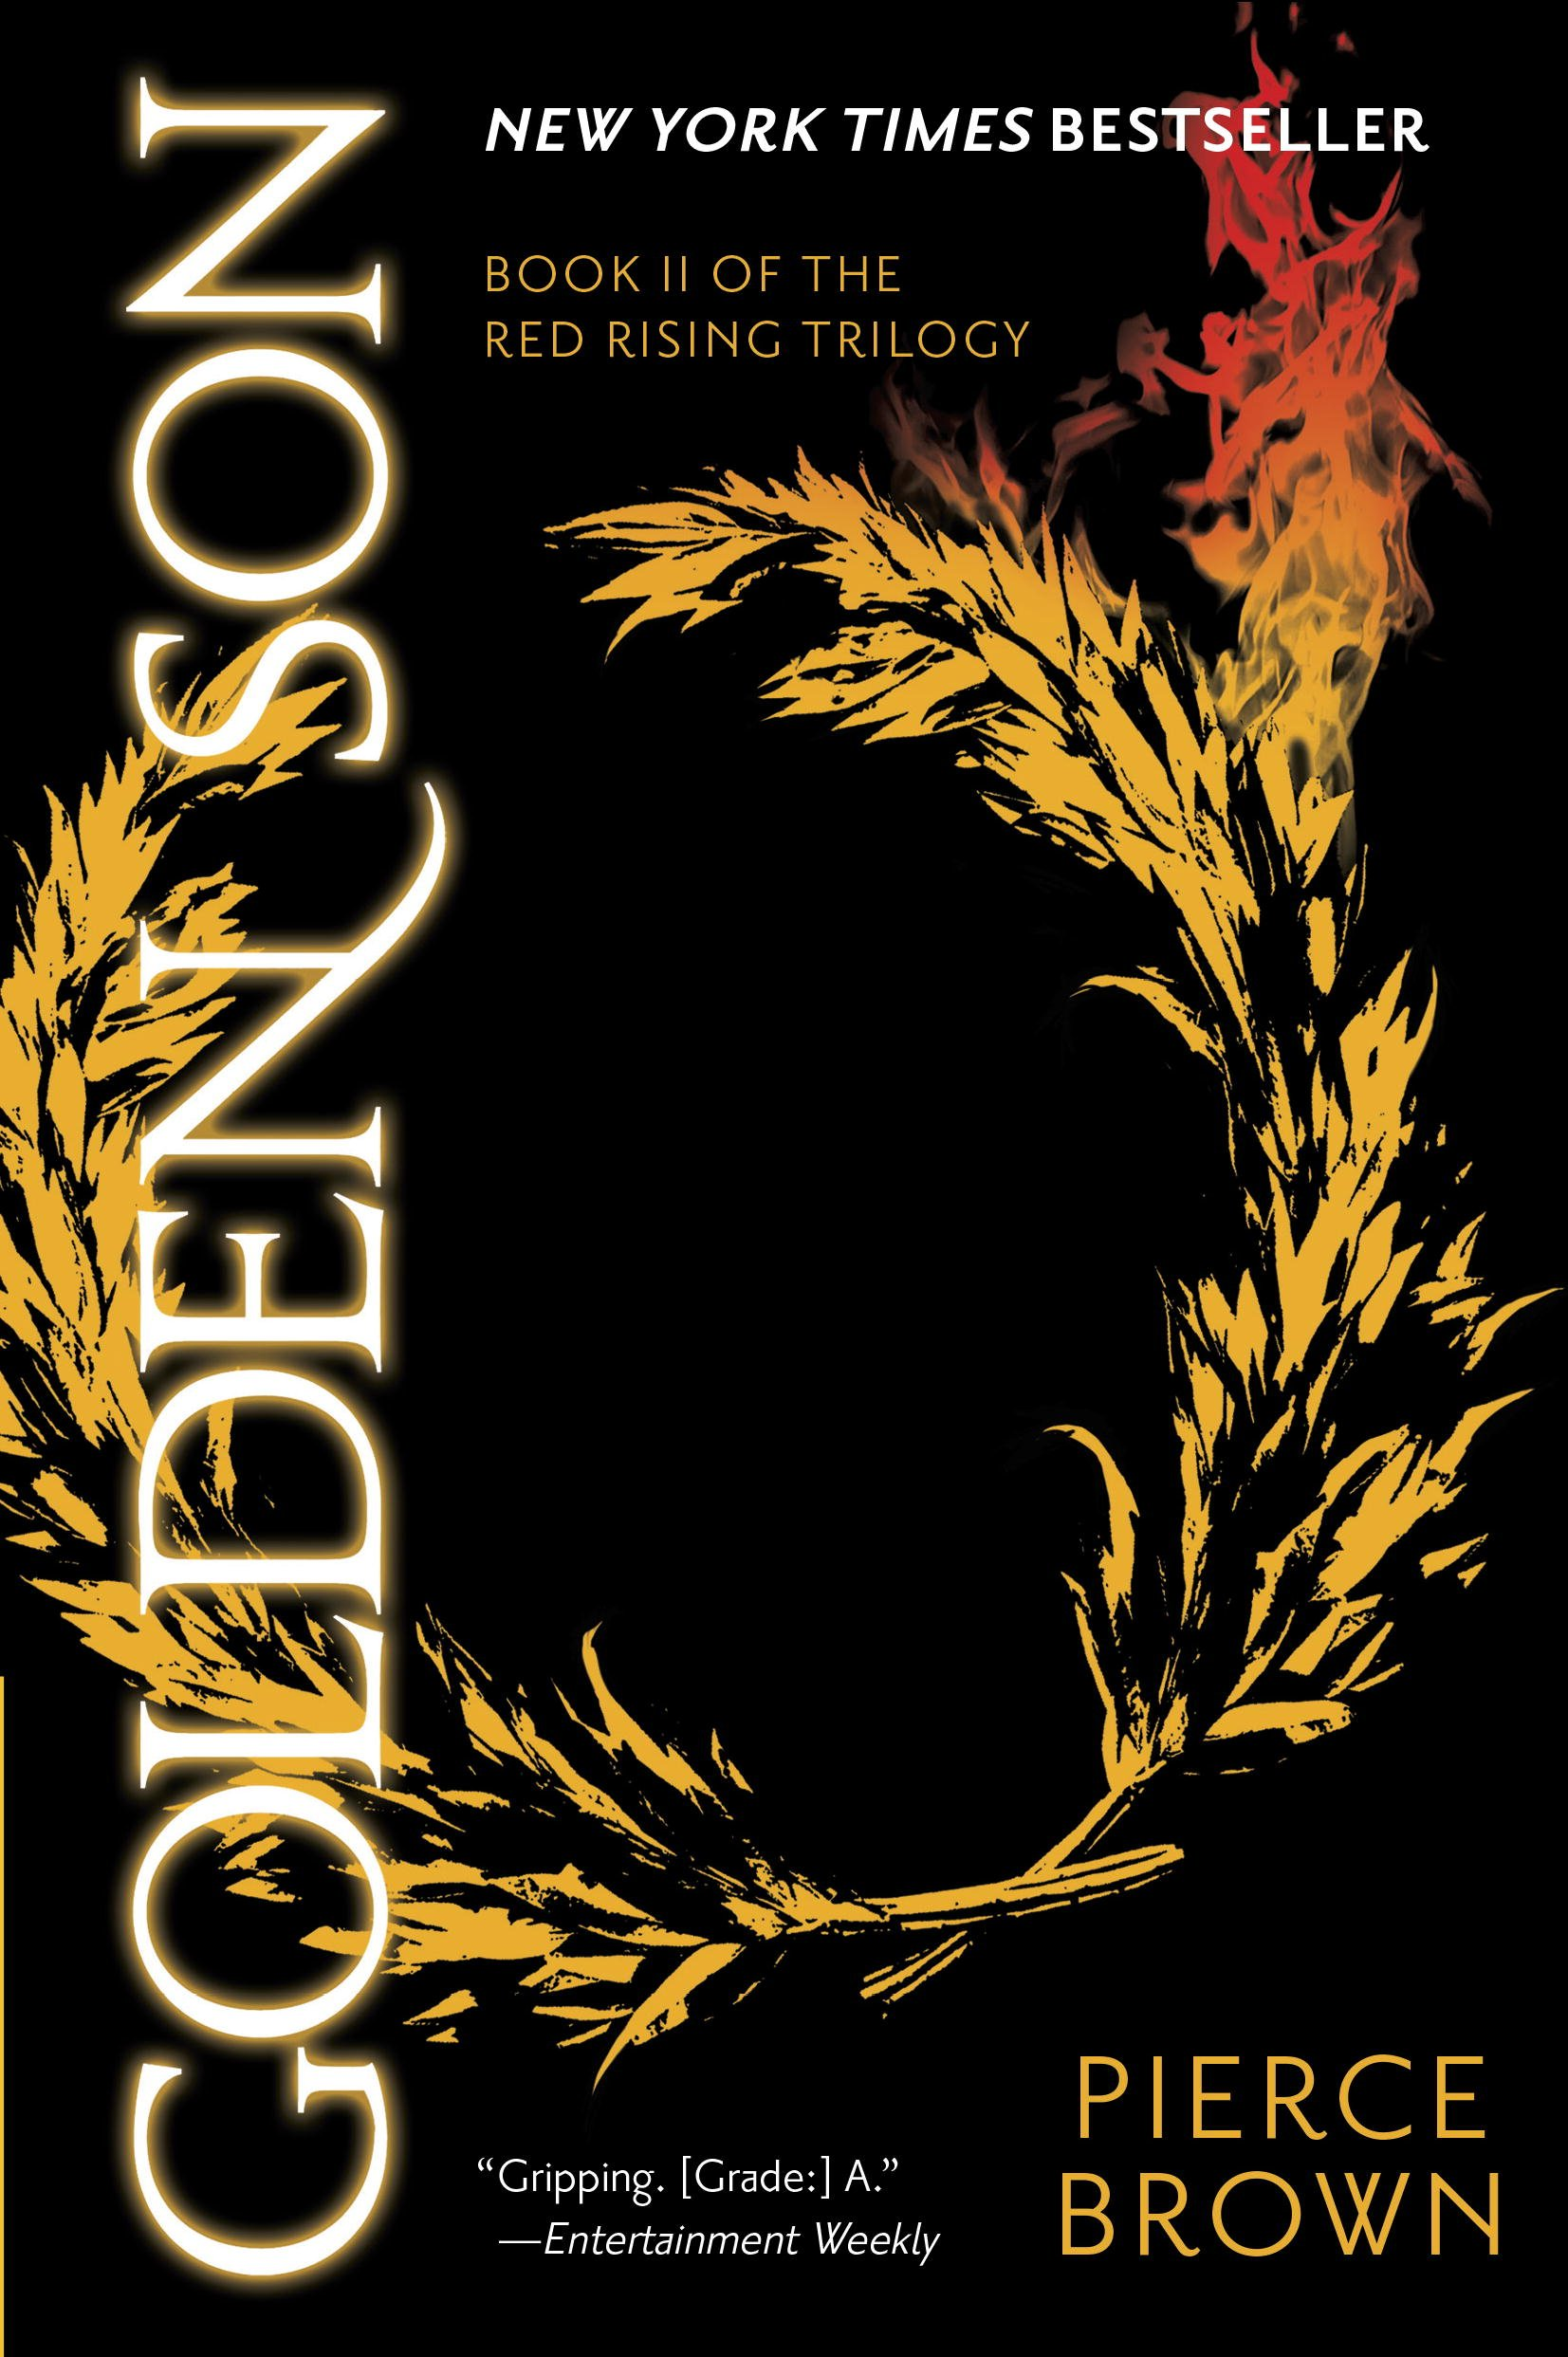 Golden Son - The Red Rising Trilogy #2 - Pierce Brown